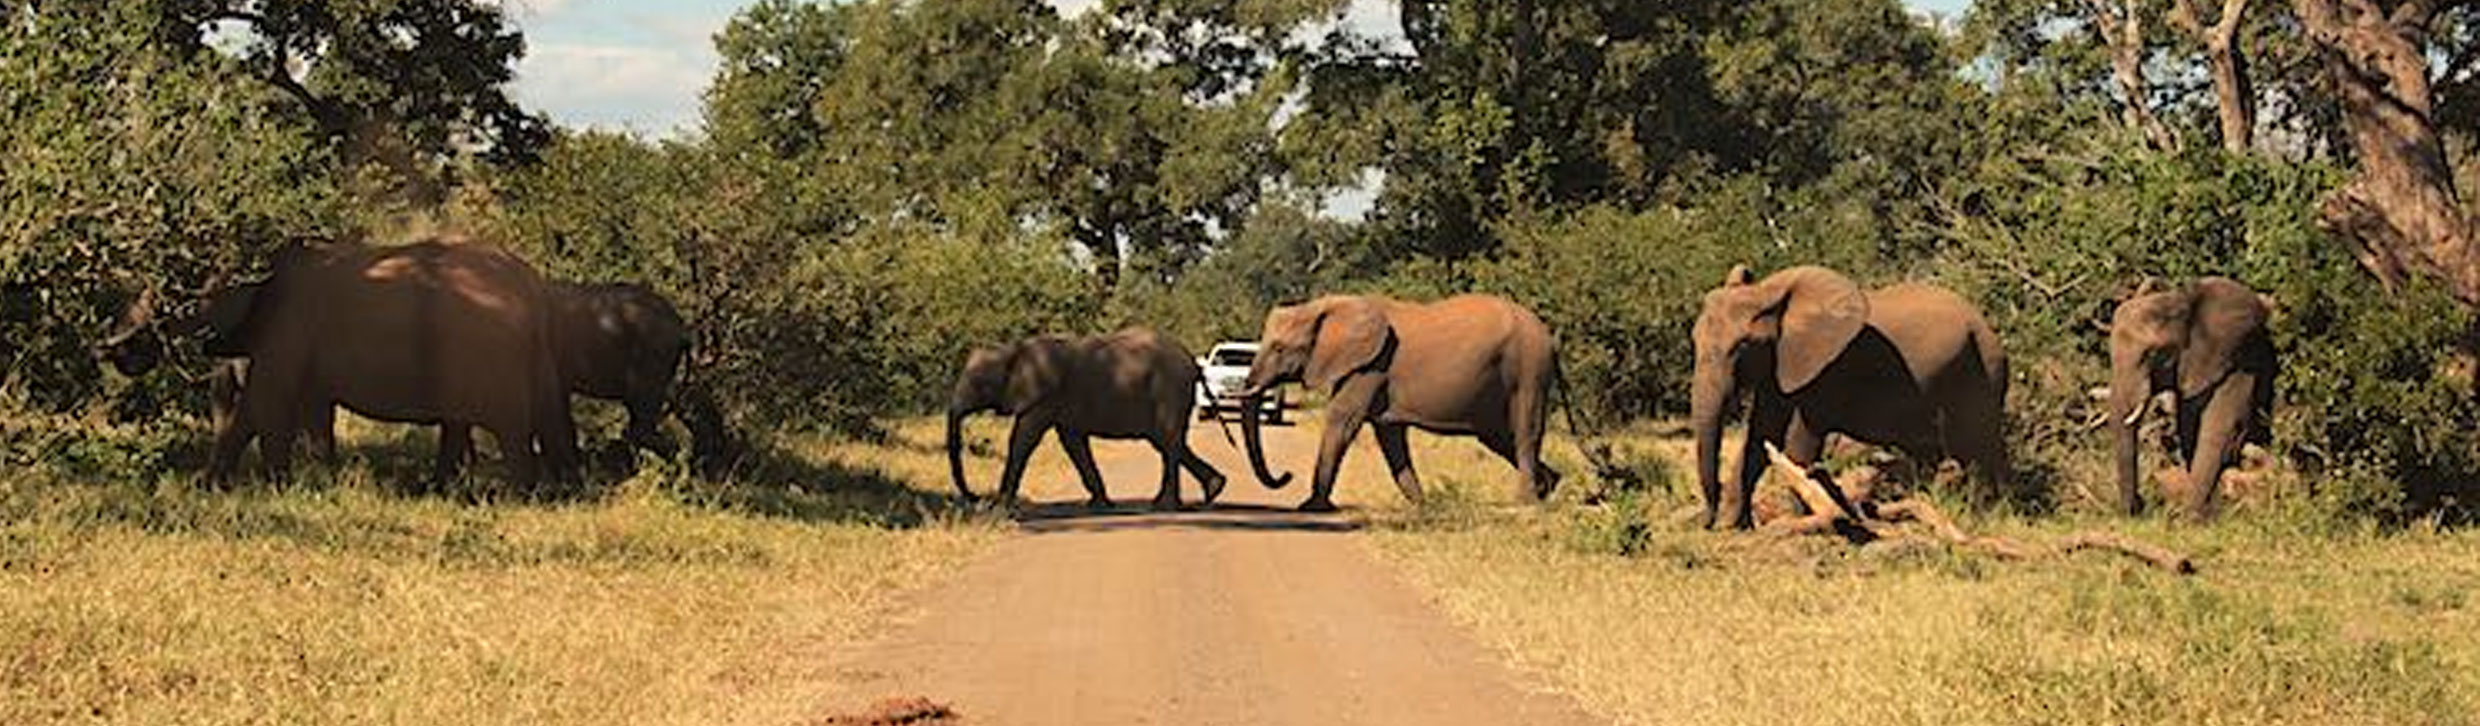 kruger-park-tours-southern-african-tours